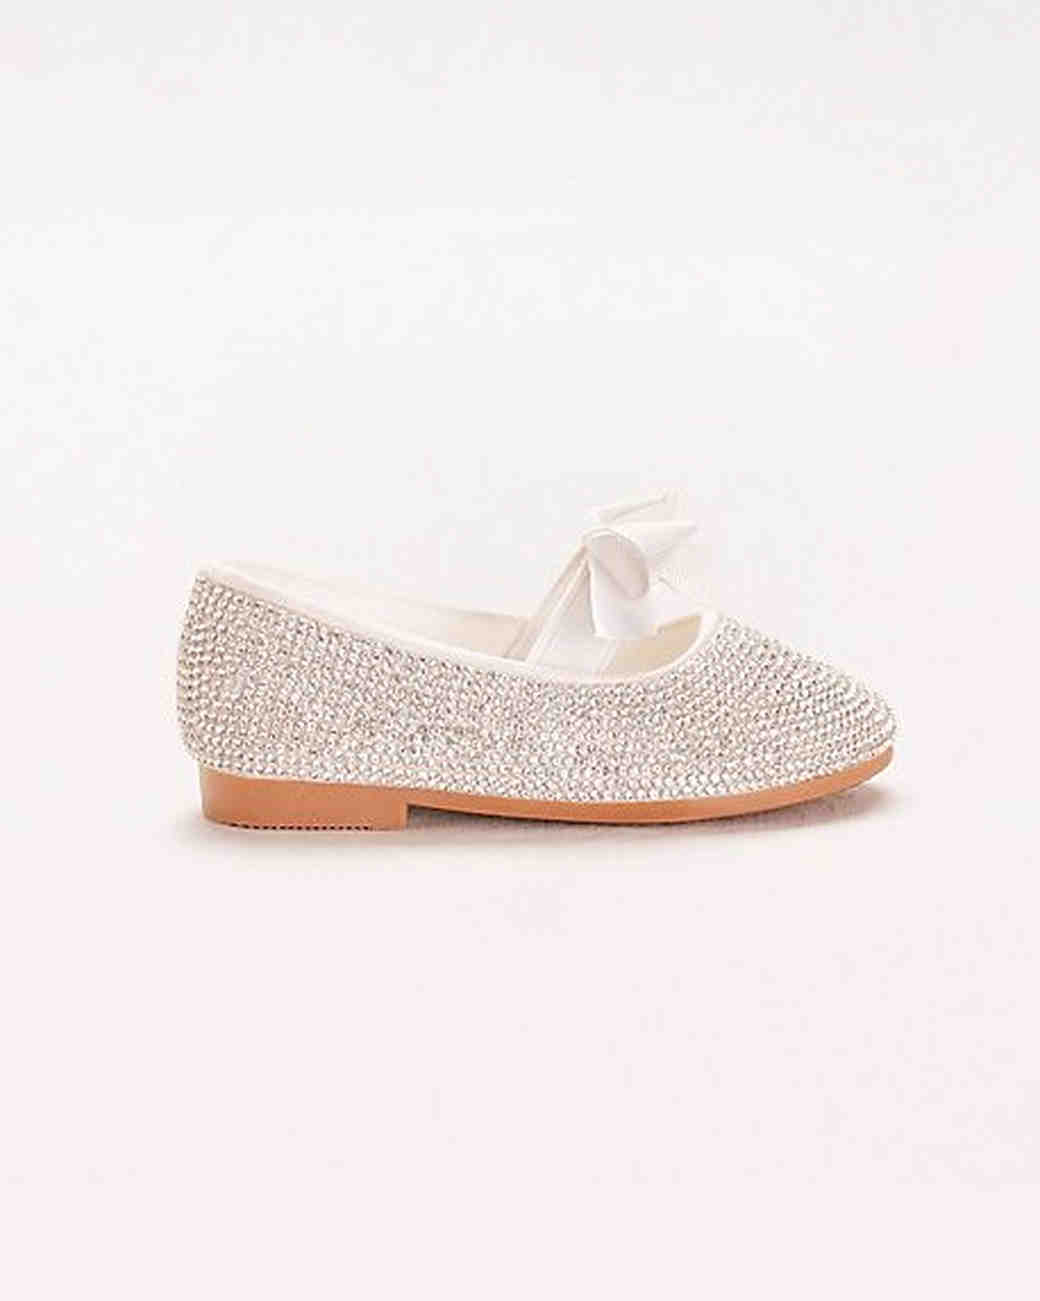 Adorable Shoes To Complete Your Flower Girls Big Day Look Martha